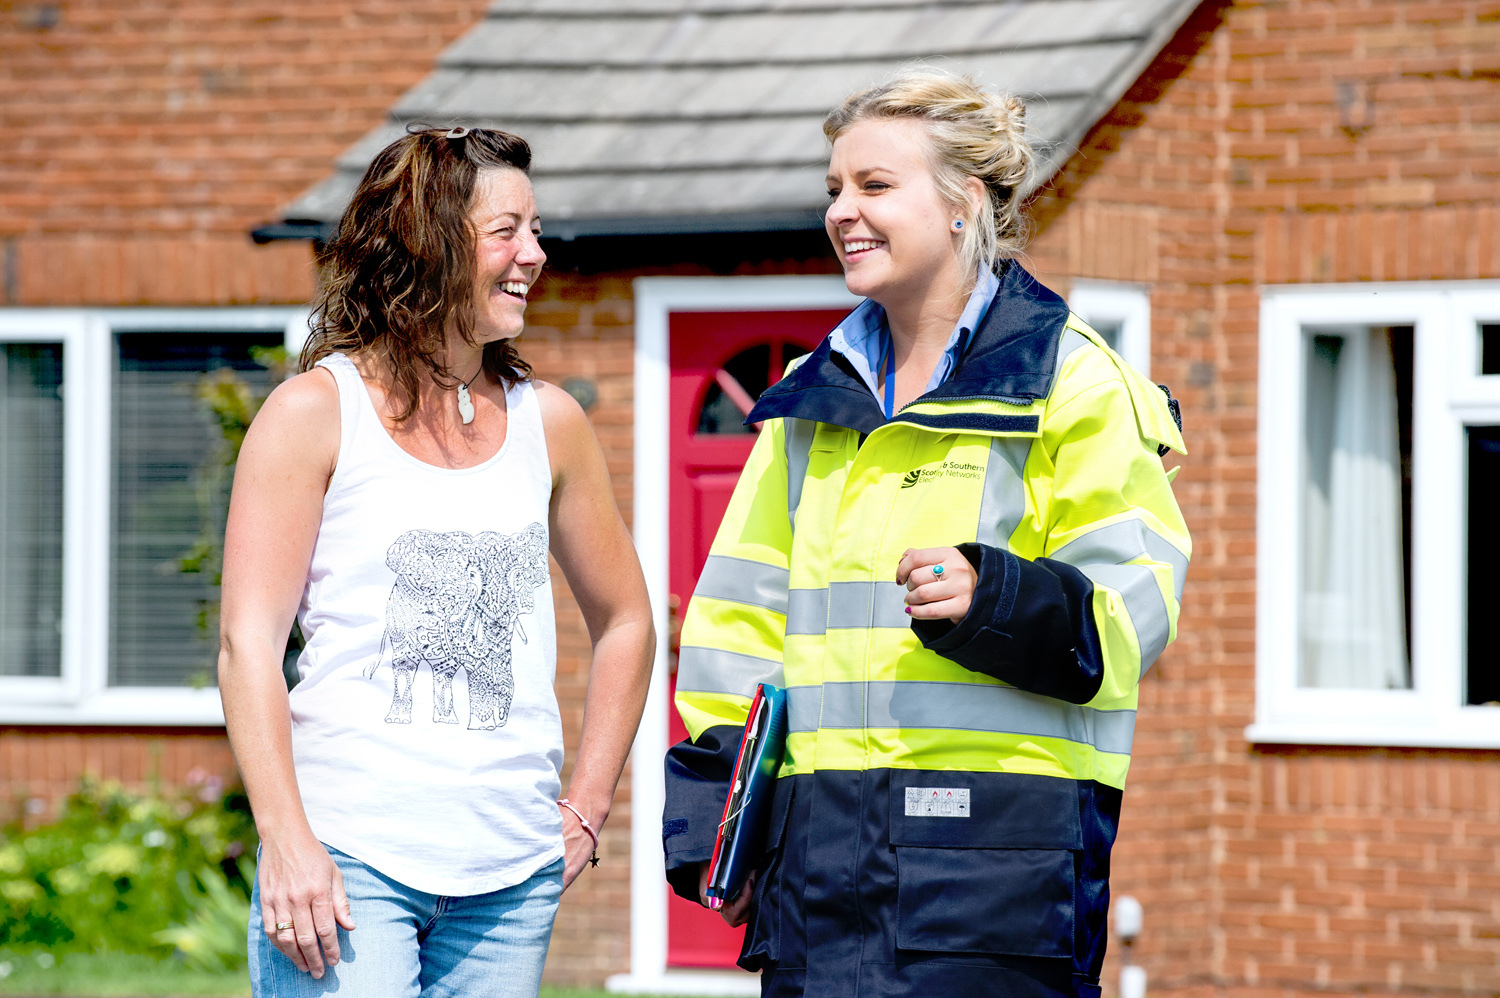 Jasmine Myhill reassuring local residents who live close to the new underground power cable extension building project, Lee-on-Solent. Pic: Stuart Nicol Photography